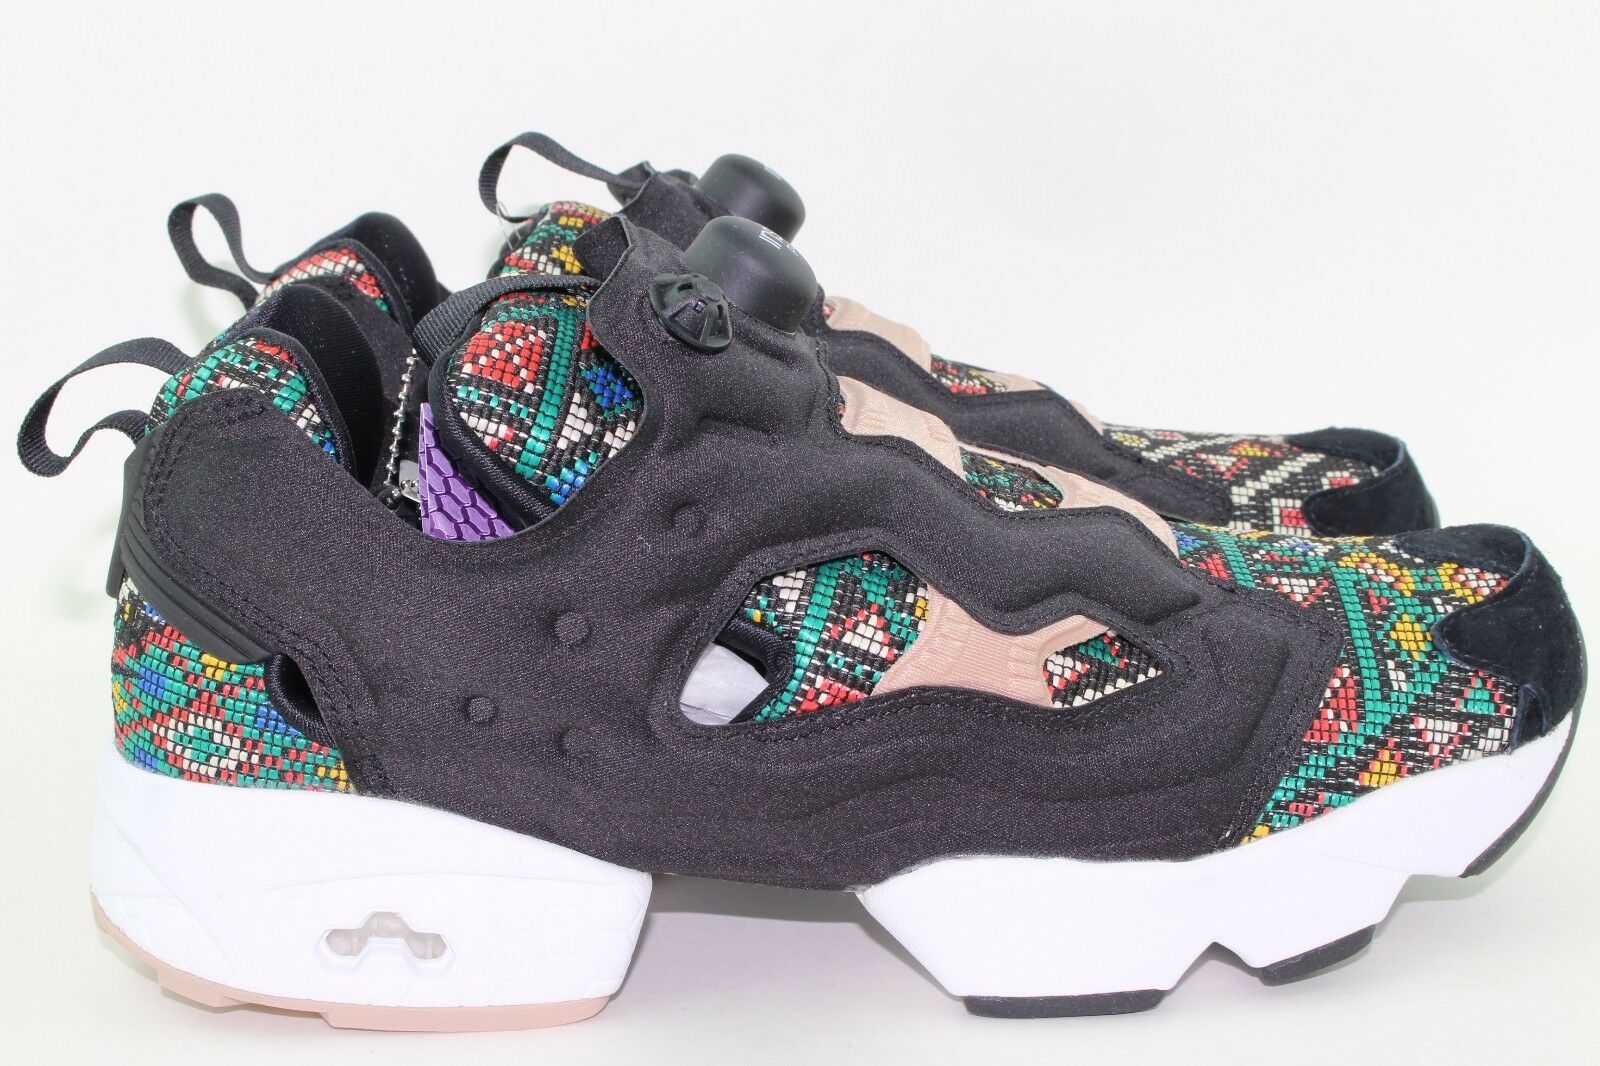 REEBOK INSTAPUMP FURY GT WOMAN SIZE 10.5 NEW DUSTY rose RARE AUTHENTIC